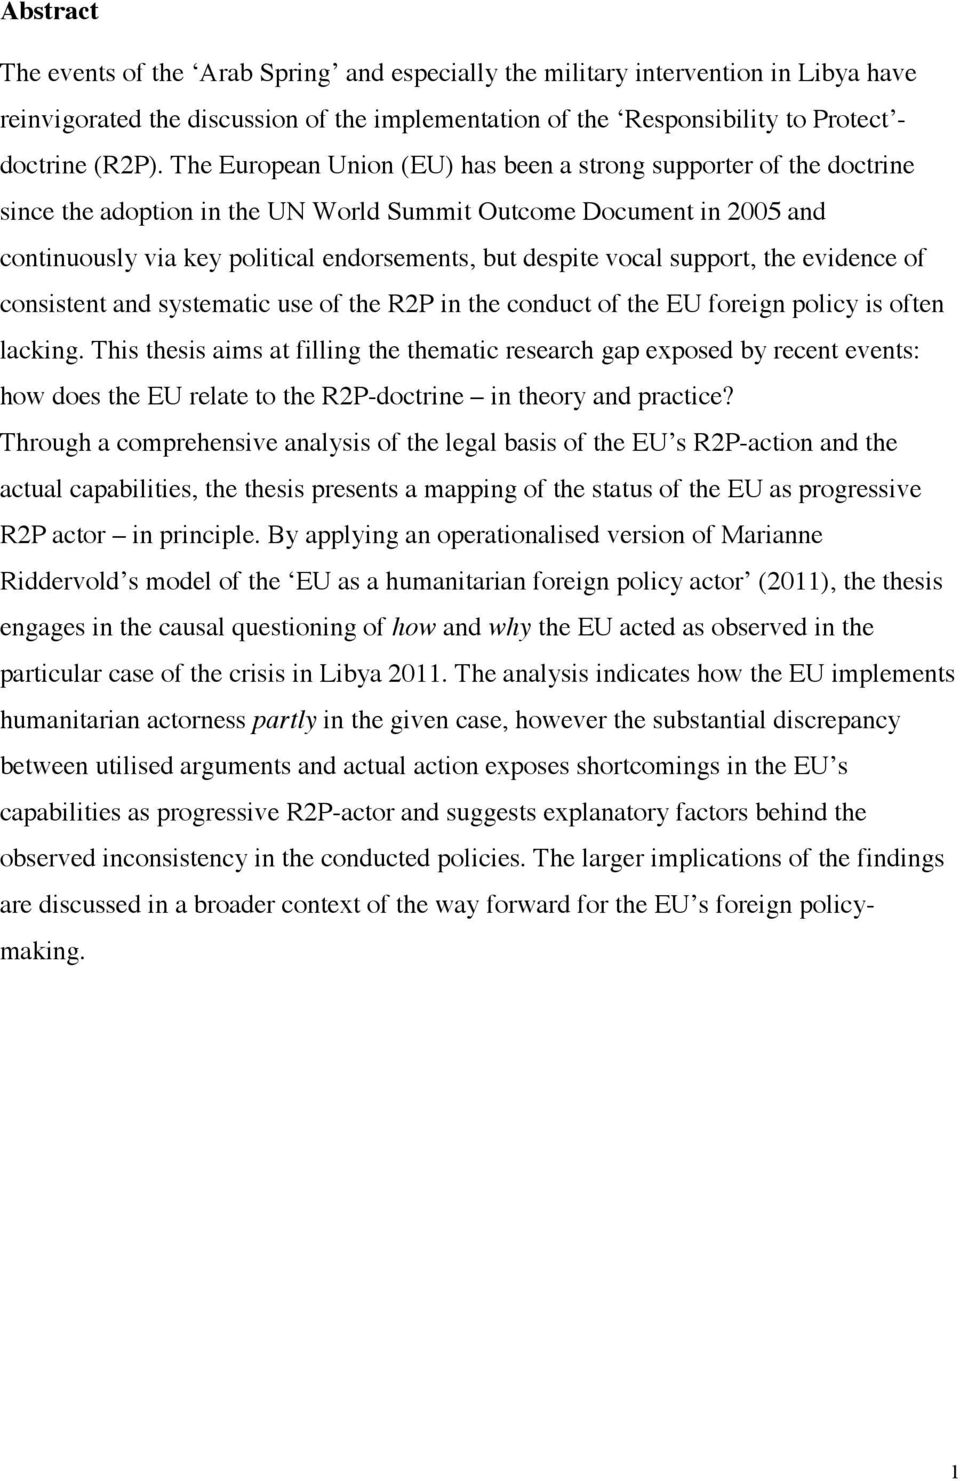 vocal support, the evidence of consistent and systematic use of the R2P in the conduct of the EU foreign policy is often lacking.